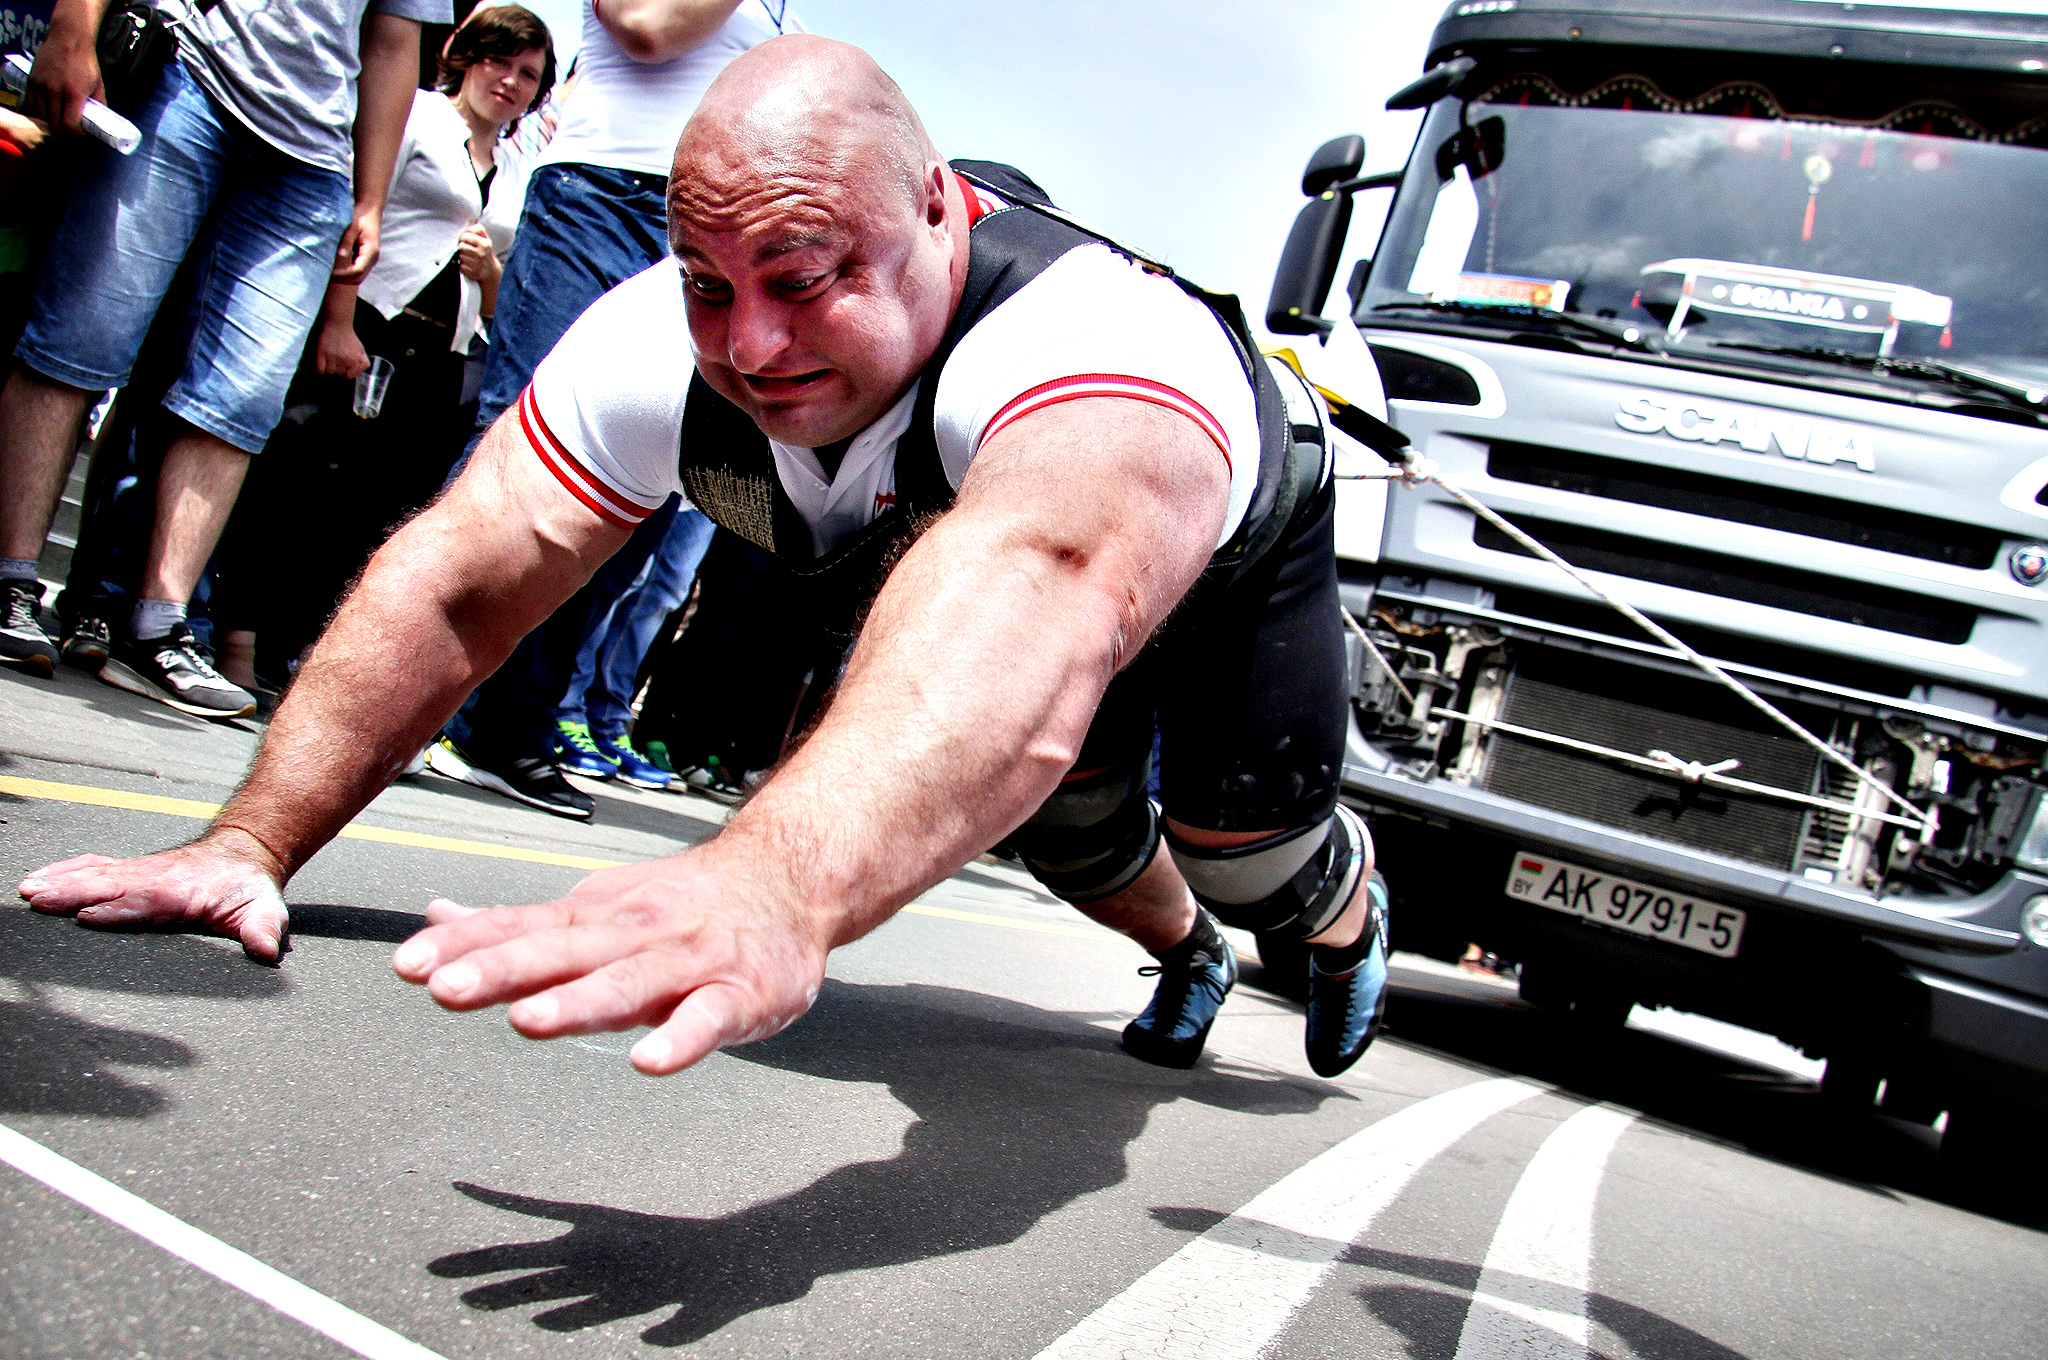 An athlete pulls a 15-tonne truck during a Truck-Pull event marking the upcoming Independence Day in the Belarus capital Minsk,  on July 3, 2014.  The former Soviet nation celebrates its Independence Day on July 3 in memory of the end of Belarus occupation by Nazi Germany troops during the Red Army main summer offensive in 1944.